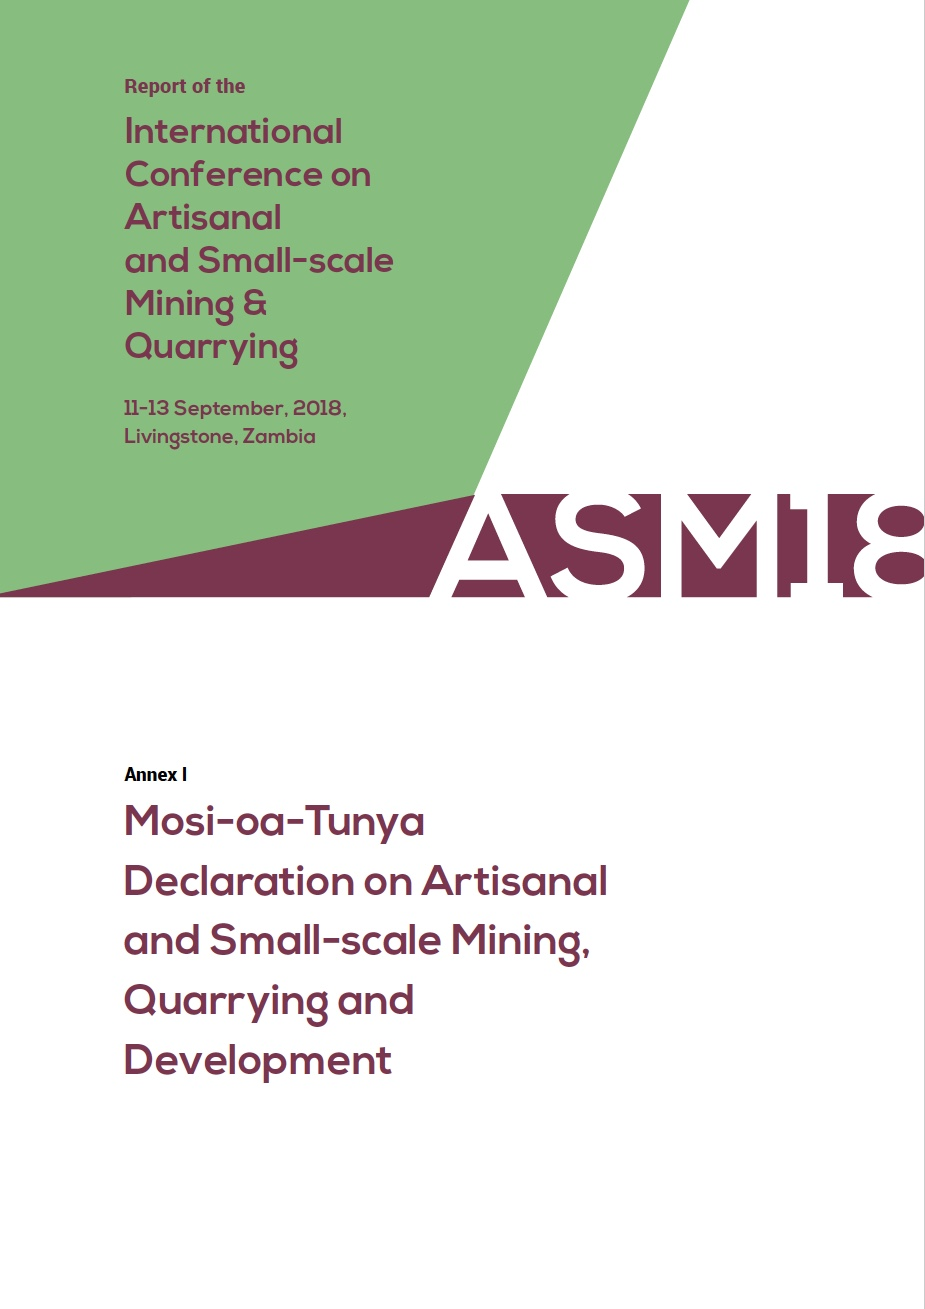 Mosi-oa-Tunya Declaration on Artisanal and Small-scale Mining, Quarrying and Development